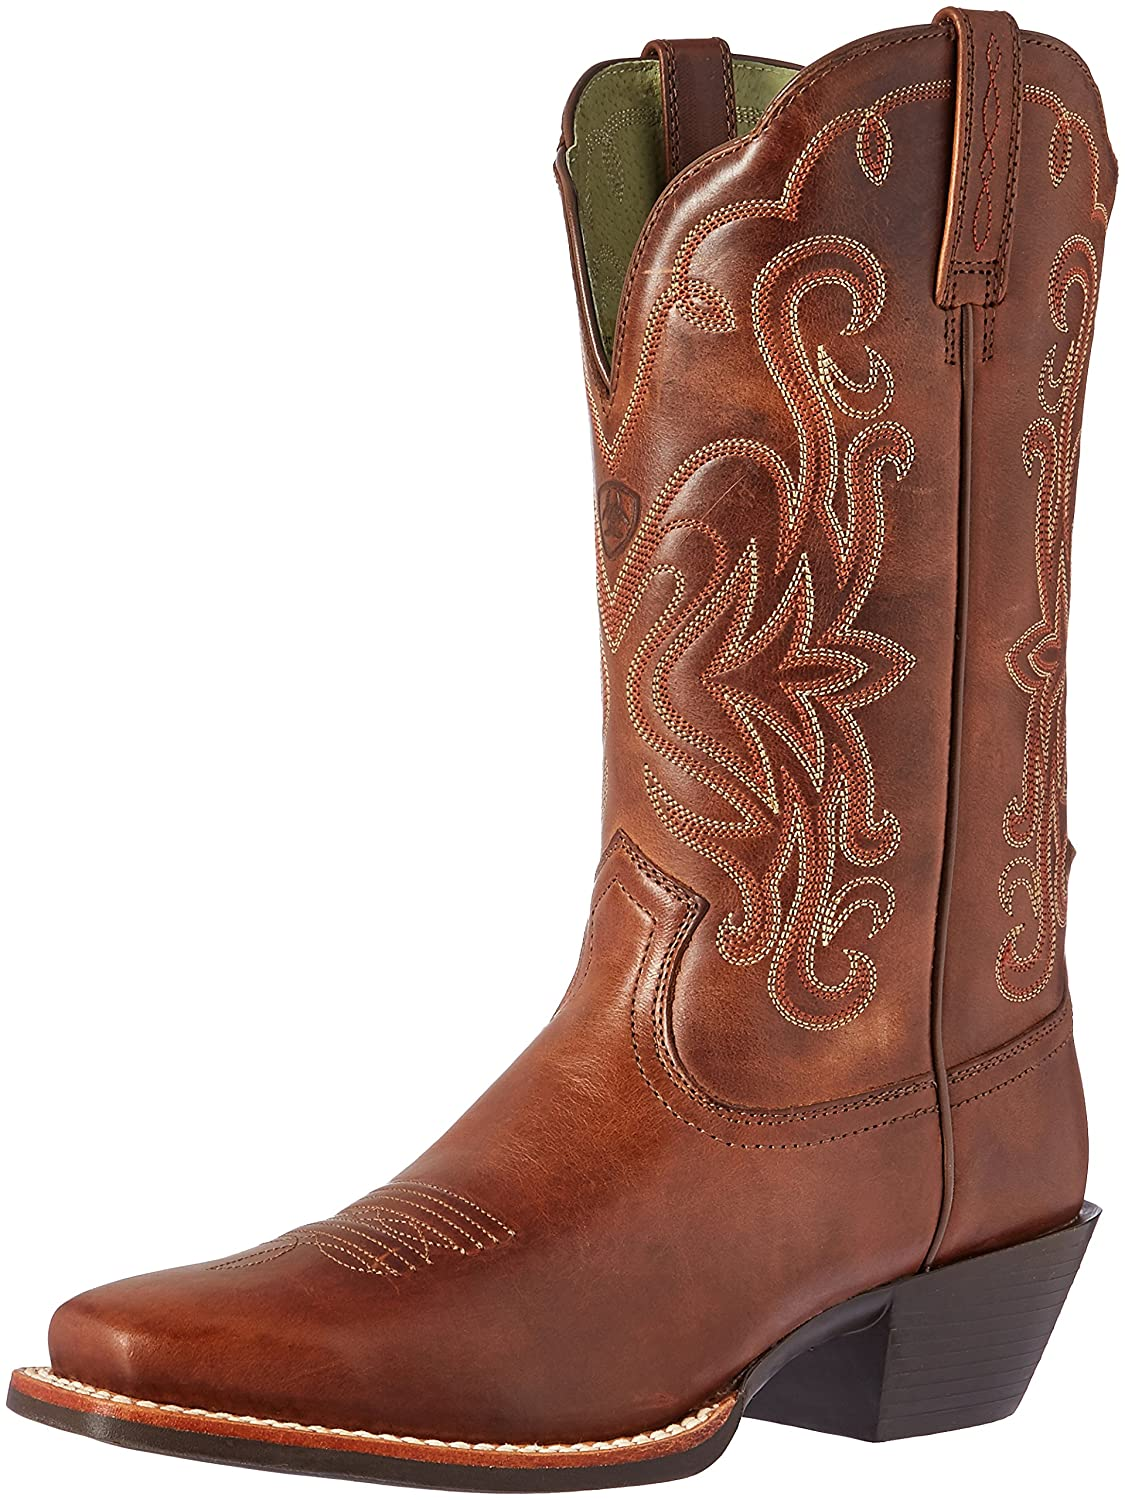 Ariat Women's Legend Western Cowboy Boot B001A7EYJA 7.5 B(M) US|Russet Rebel